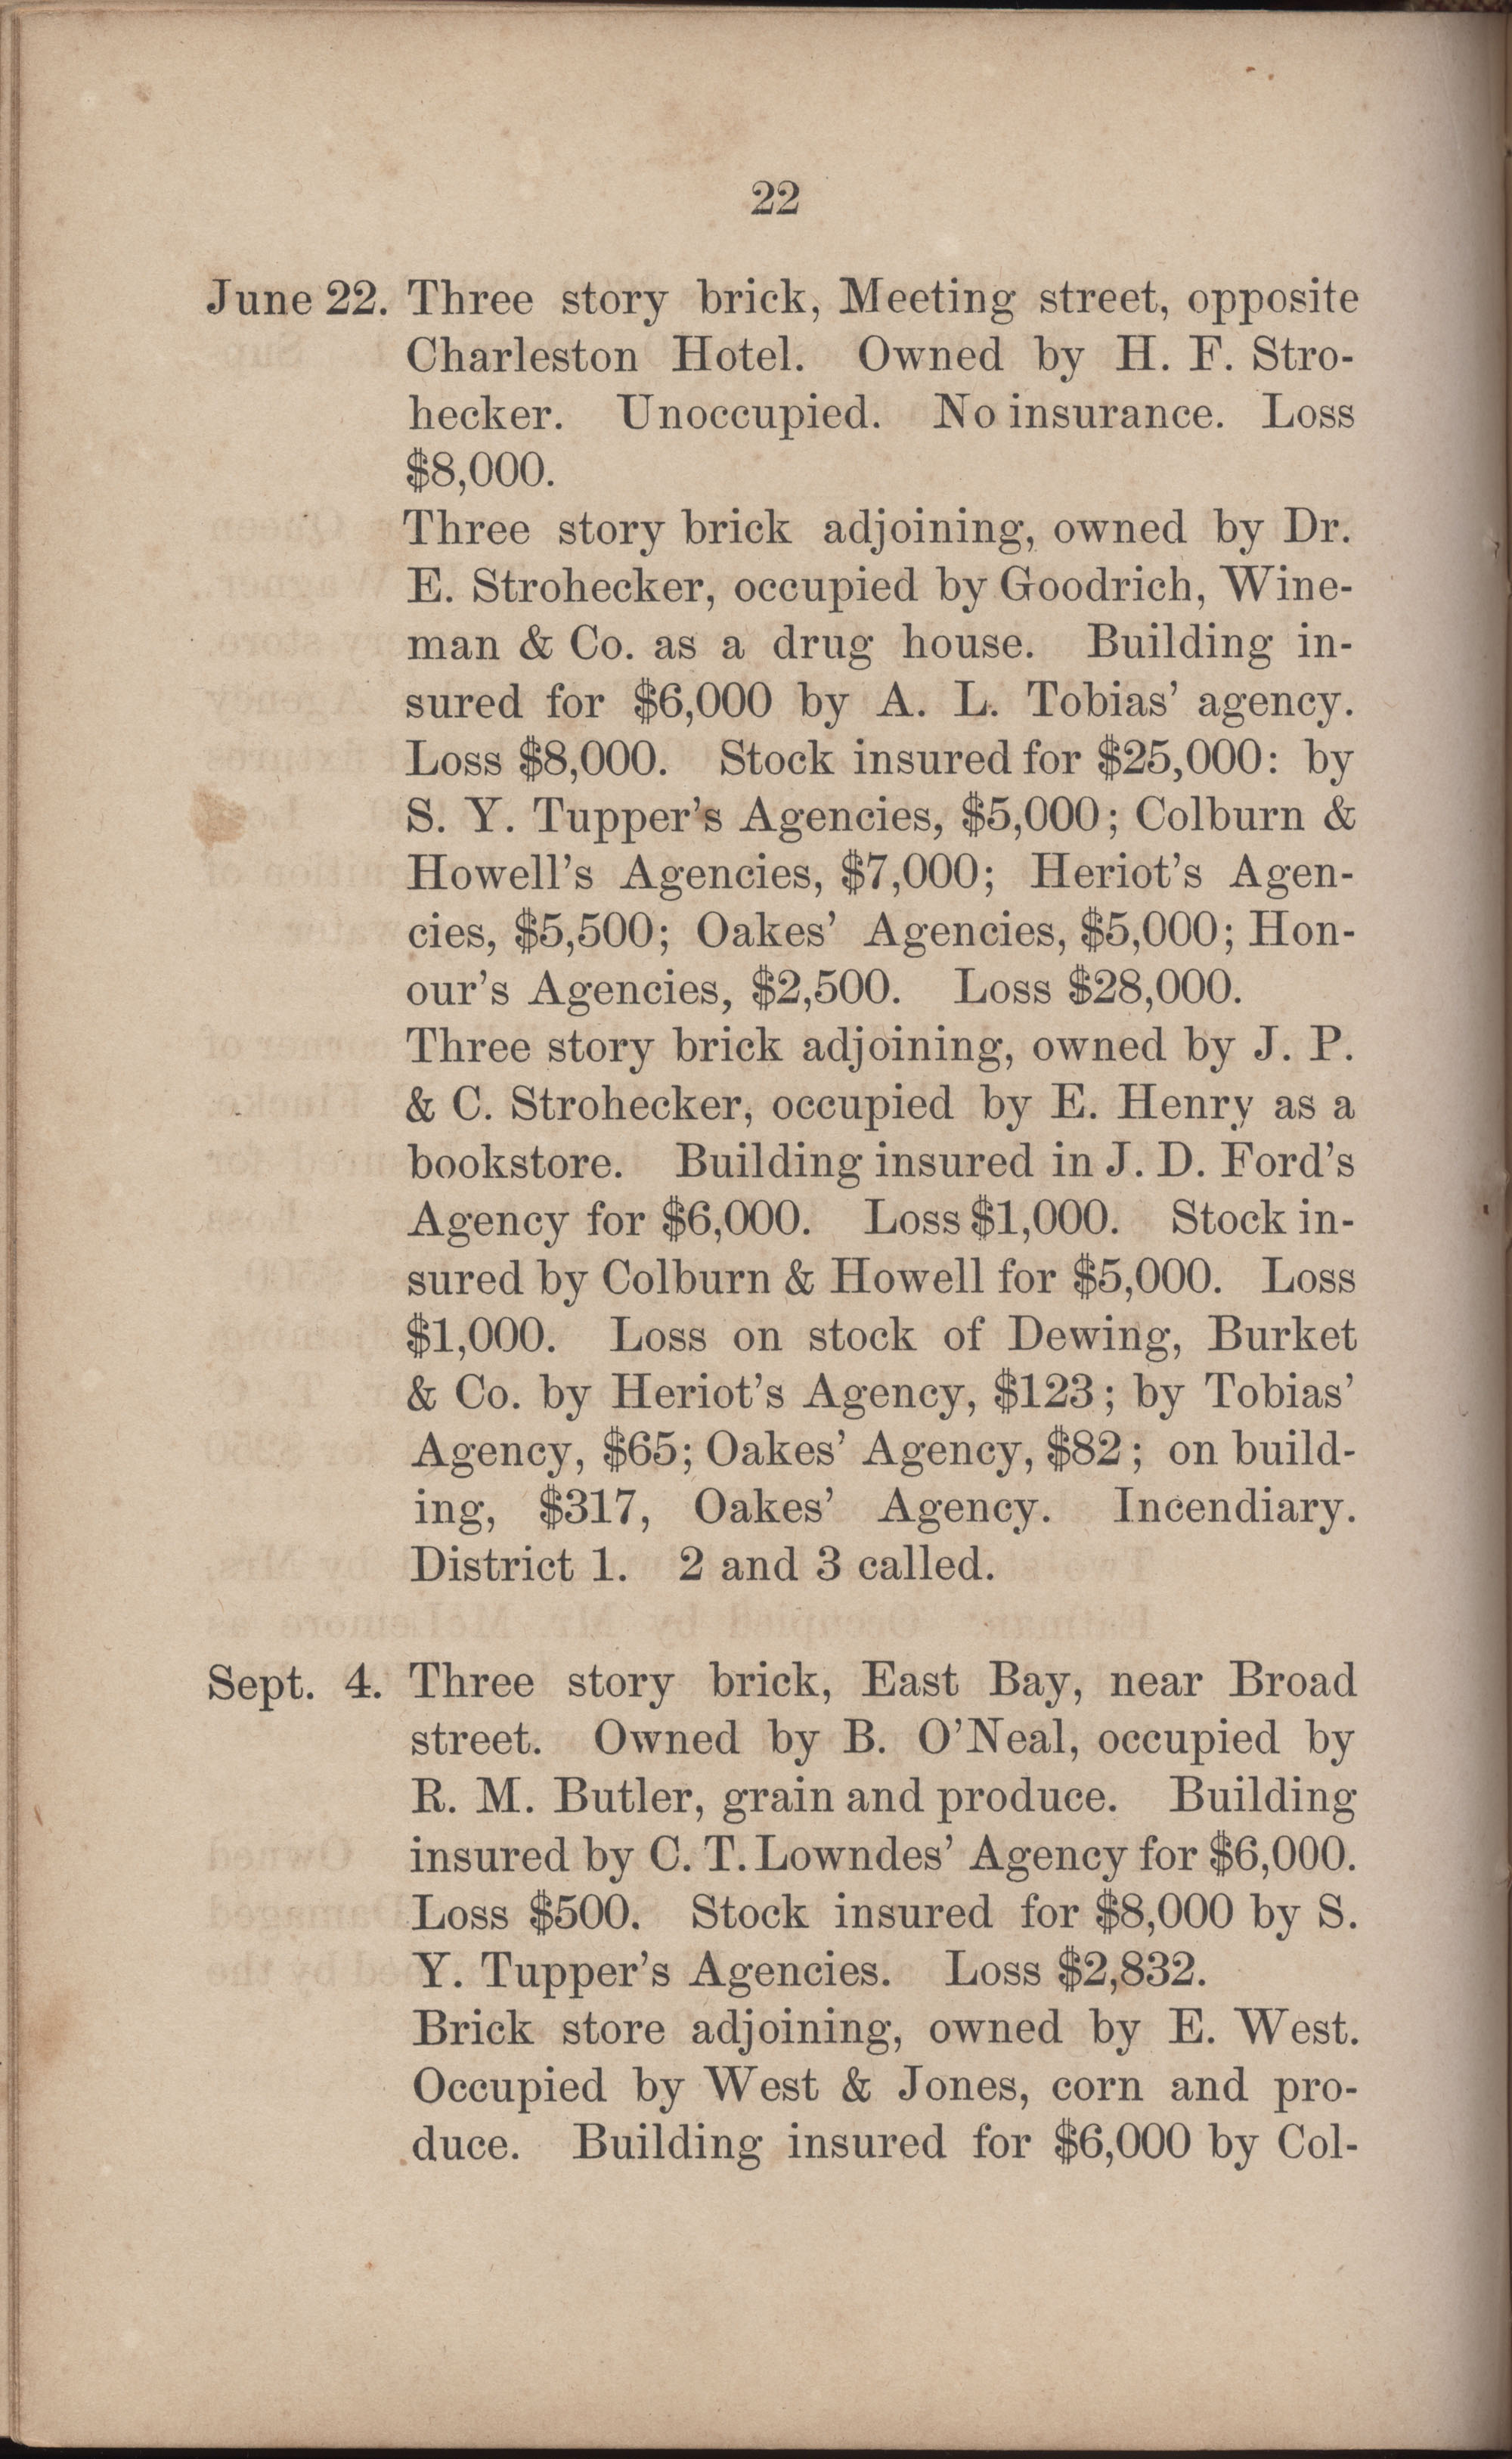 Annual Report of the Chief of the Fire Department of the City of Charleston, page 249